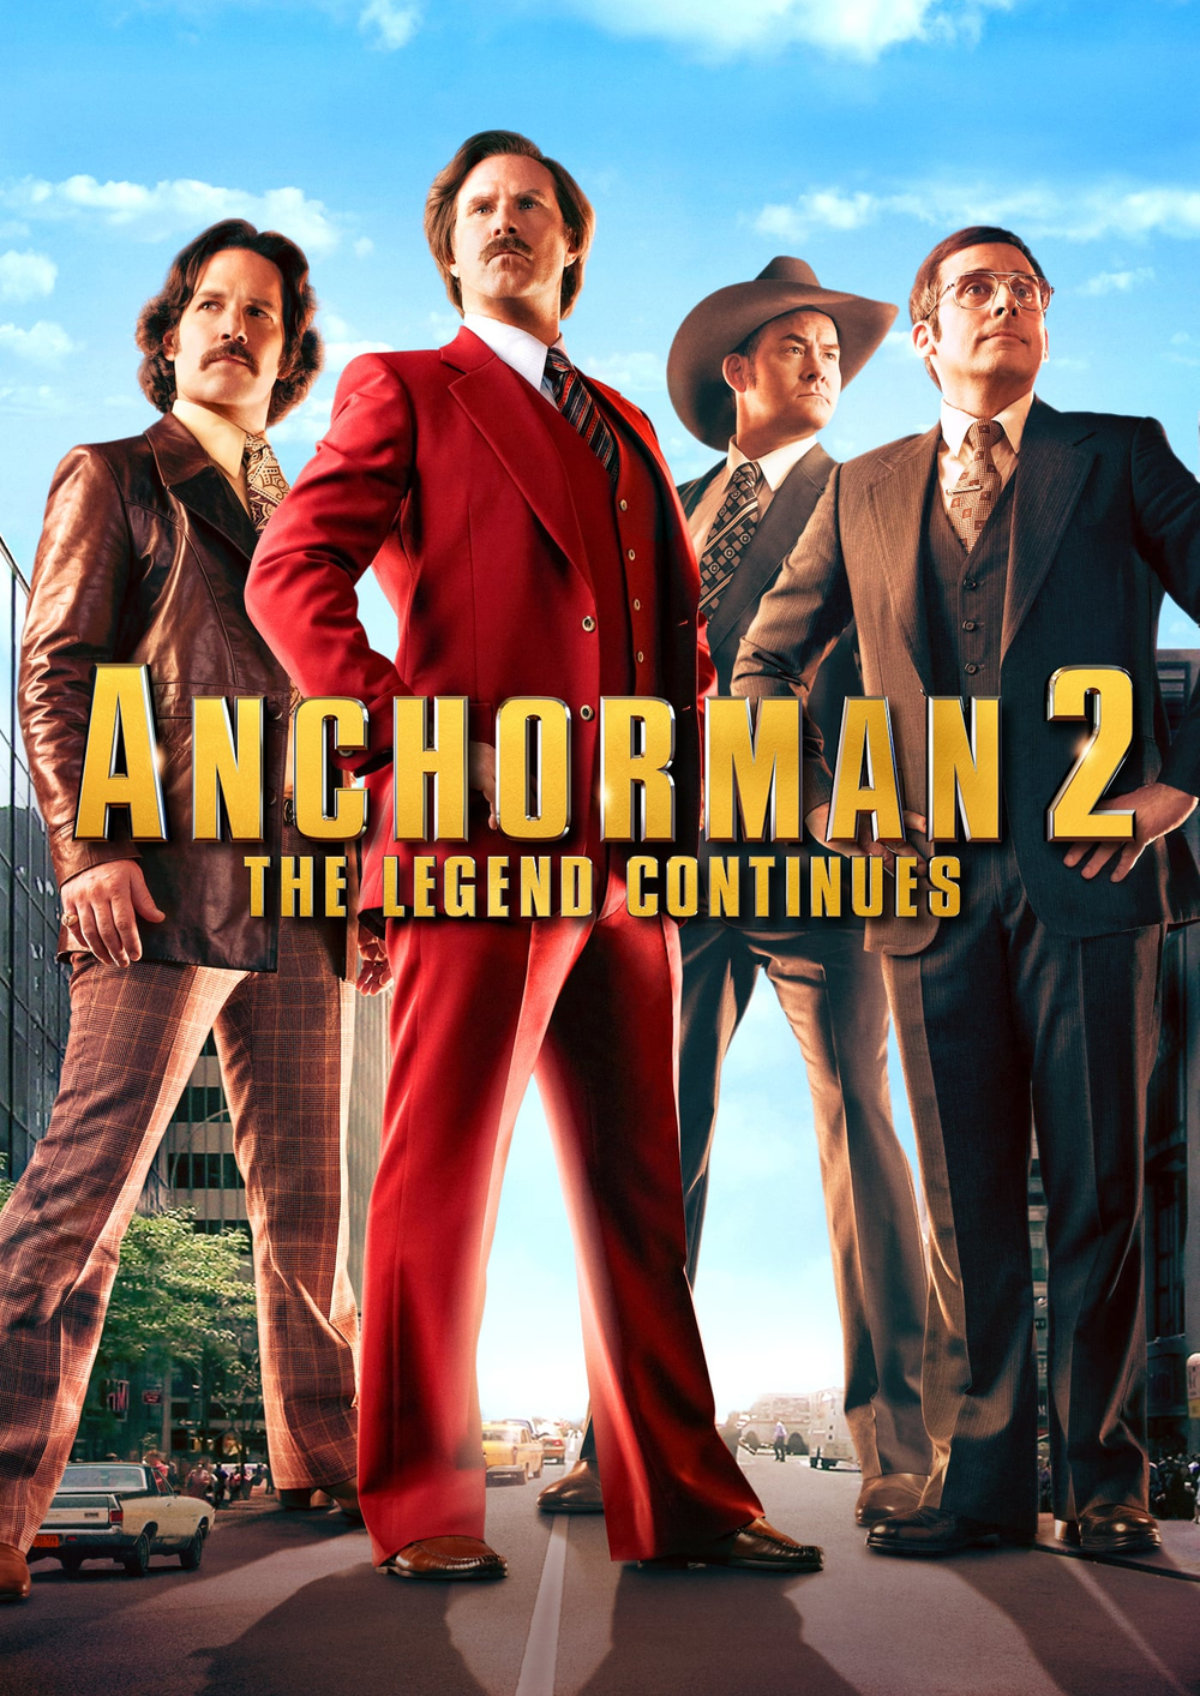 'Anchorman 2: The Legend Continues' movie poster